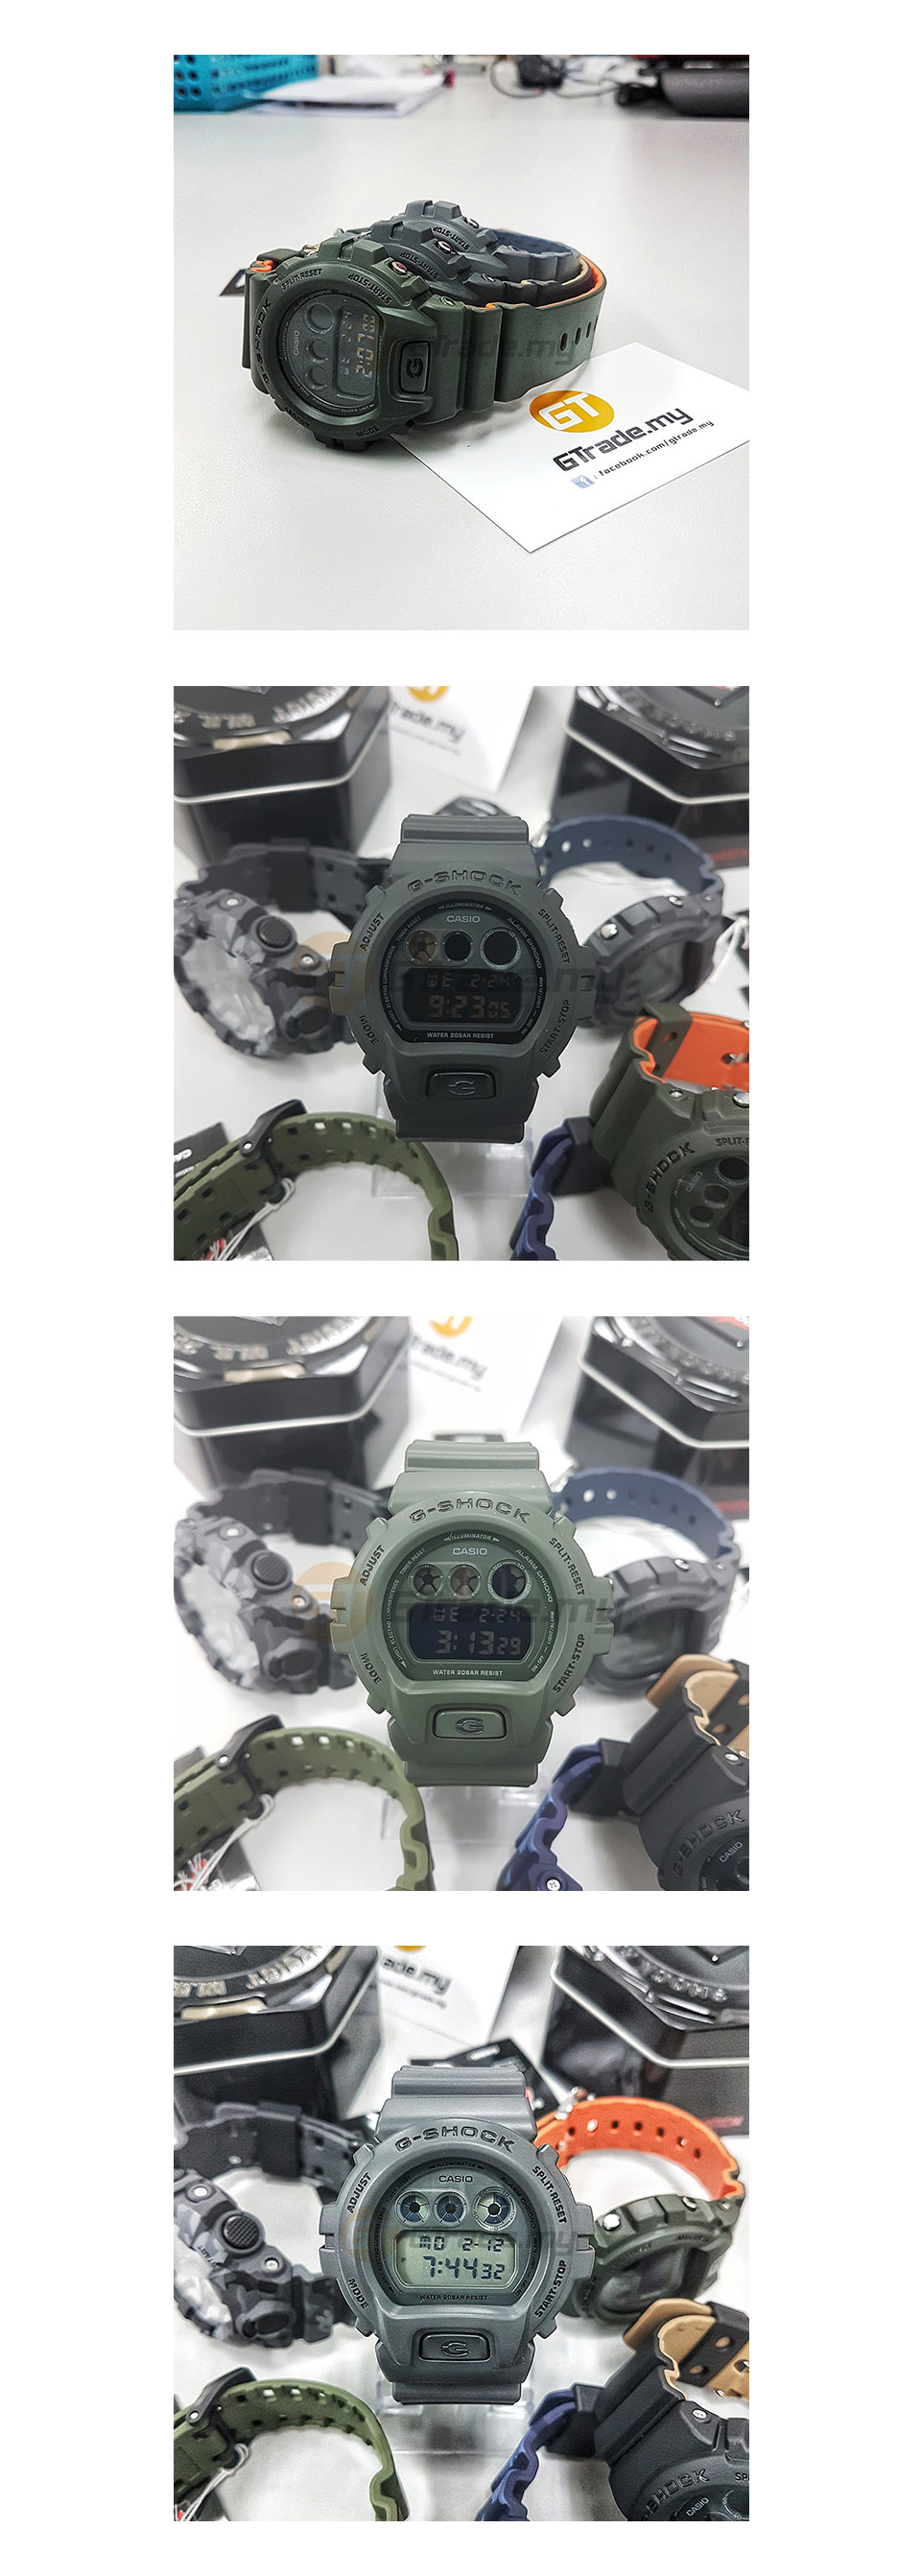 casio-g-shock-digital-watch-dw-6900lu-1d-r